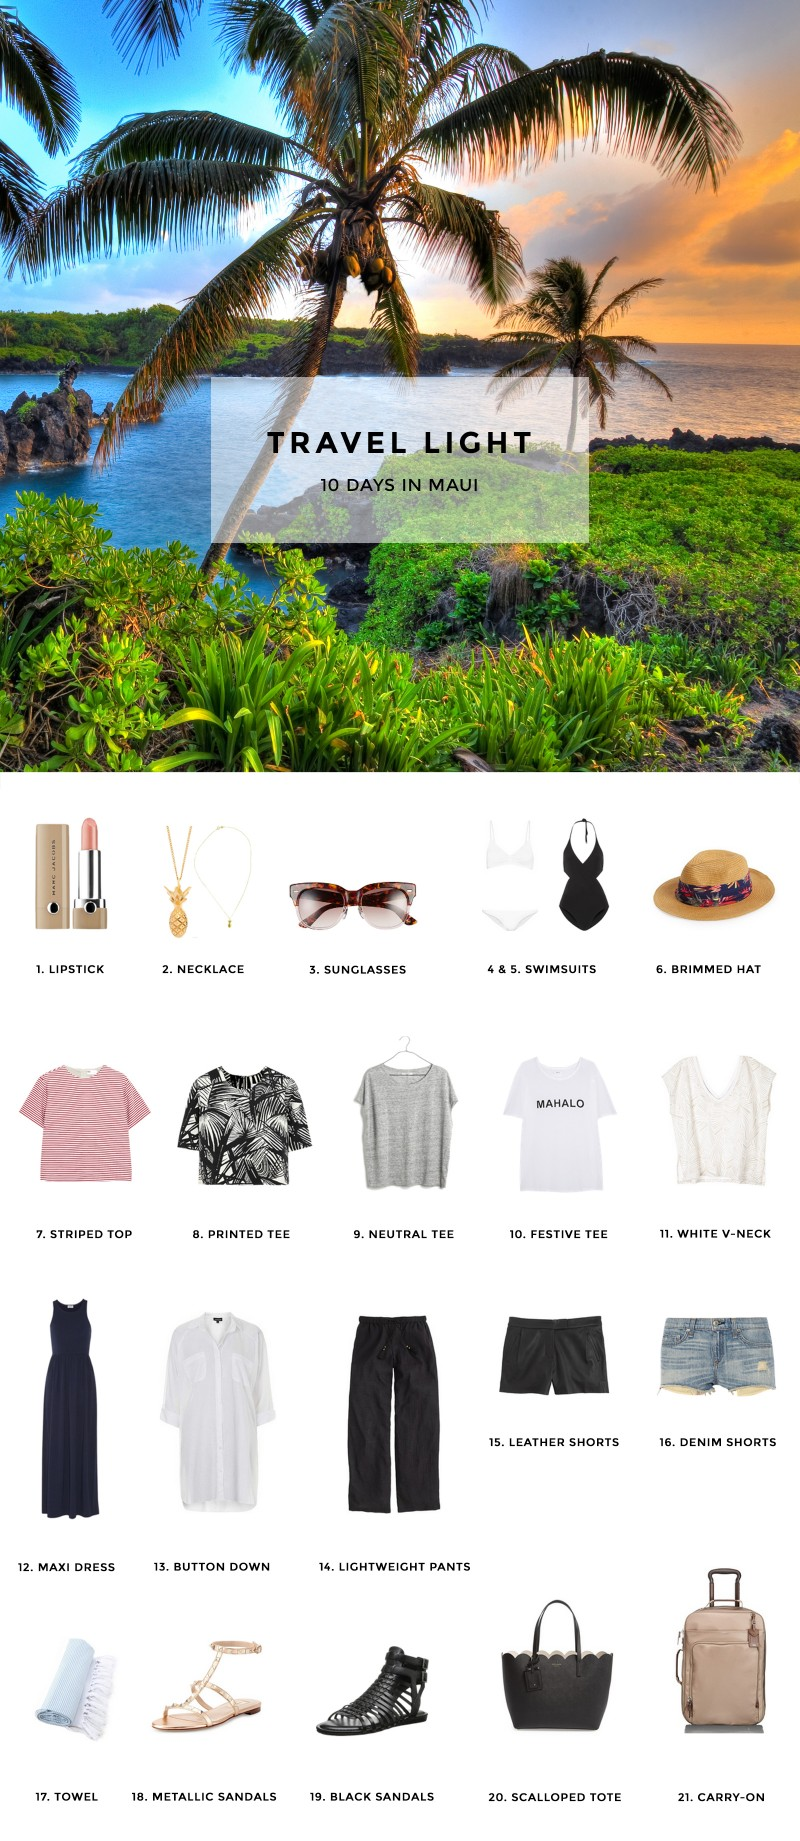 Pack for 10 Days in Maui, Hawaii